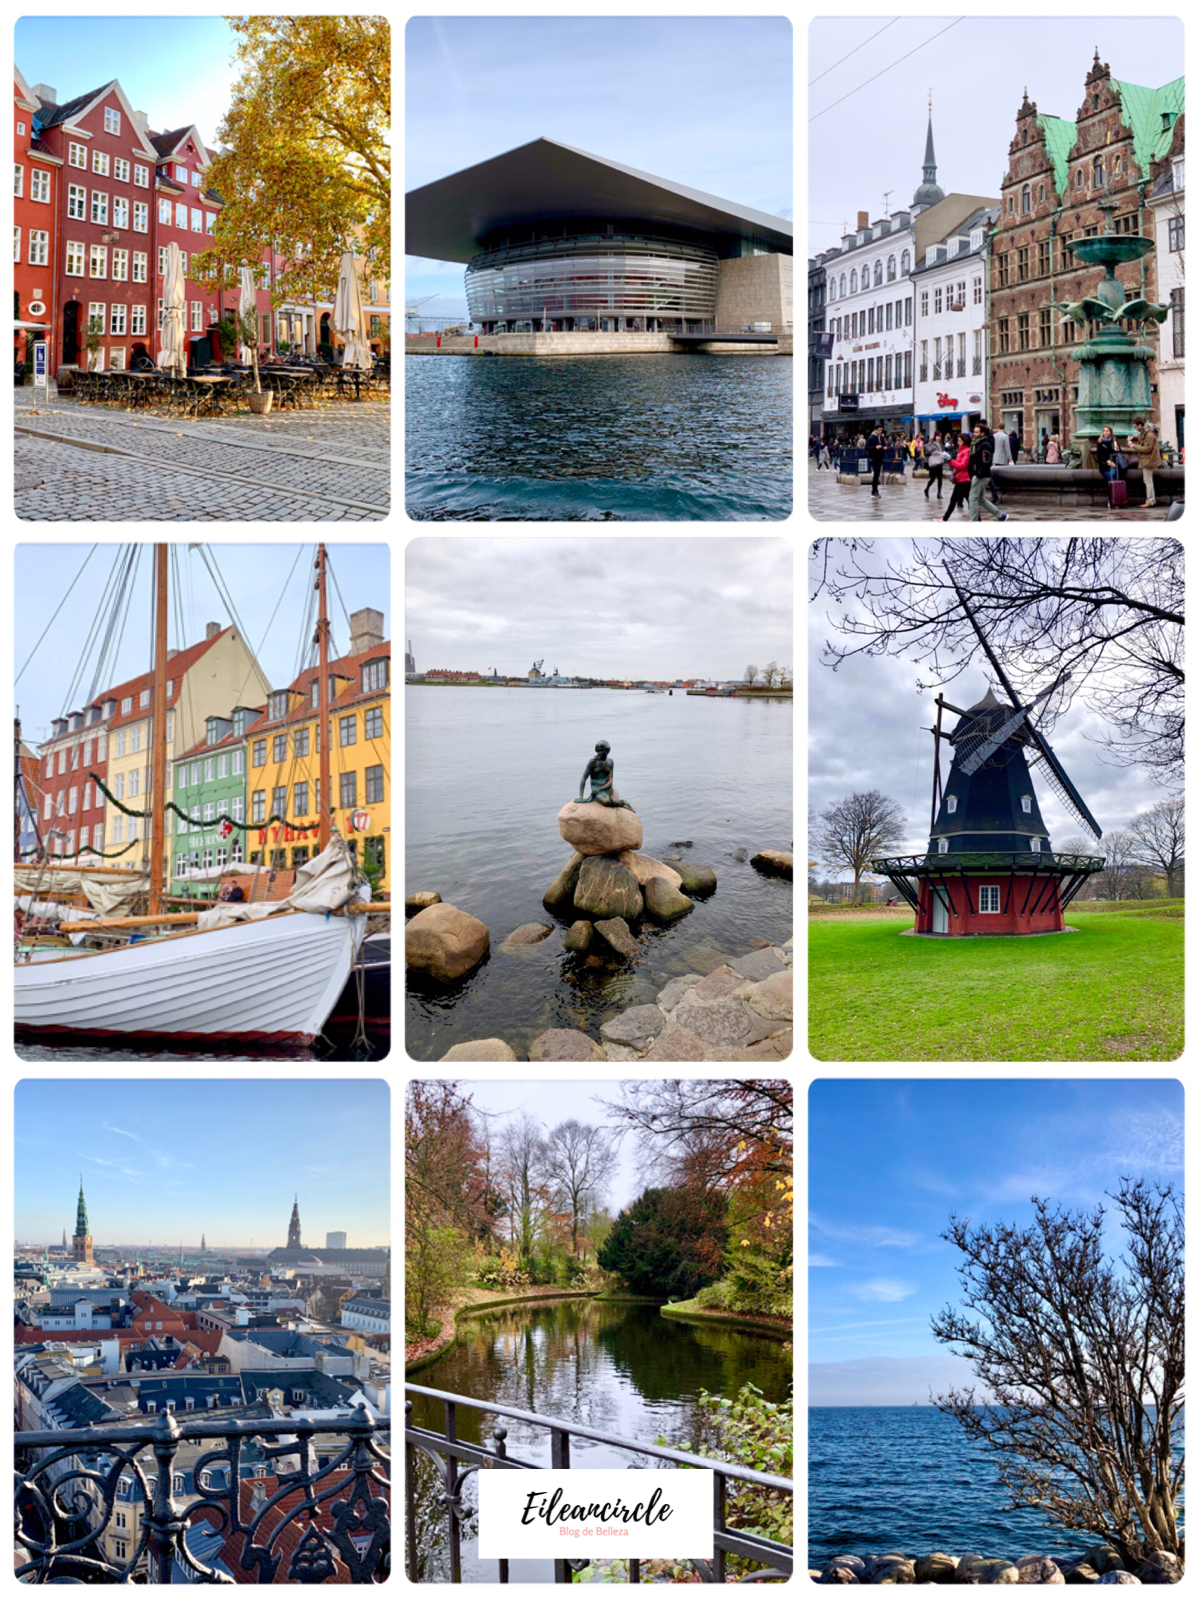 Copenhague, Denmark